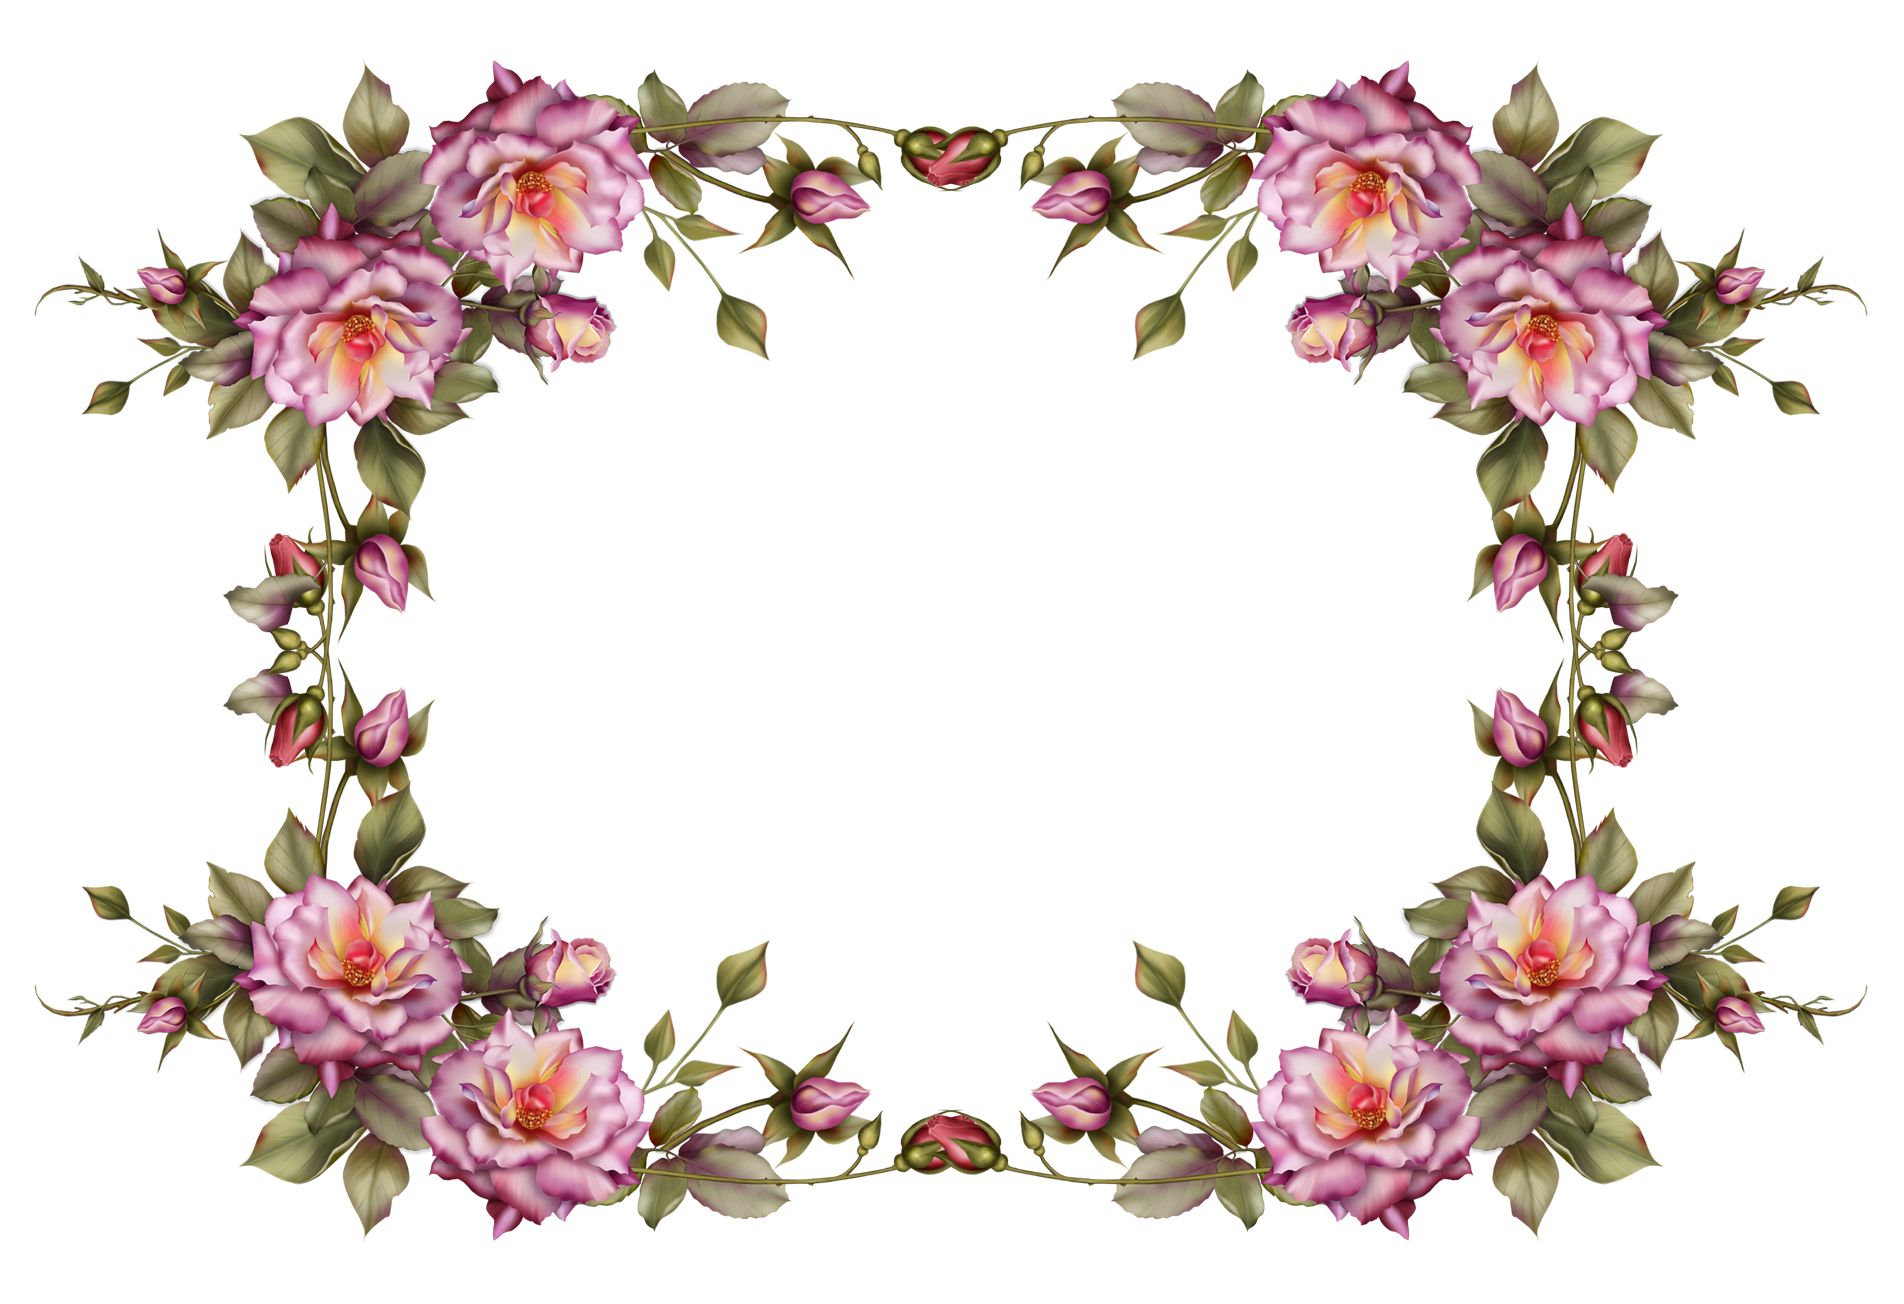 Newspaper clipart border. Flower frame by collect